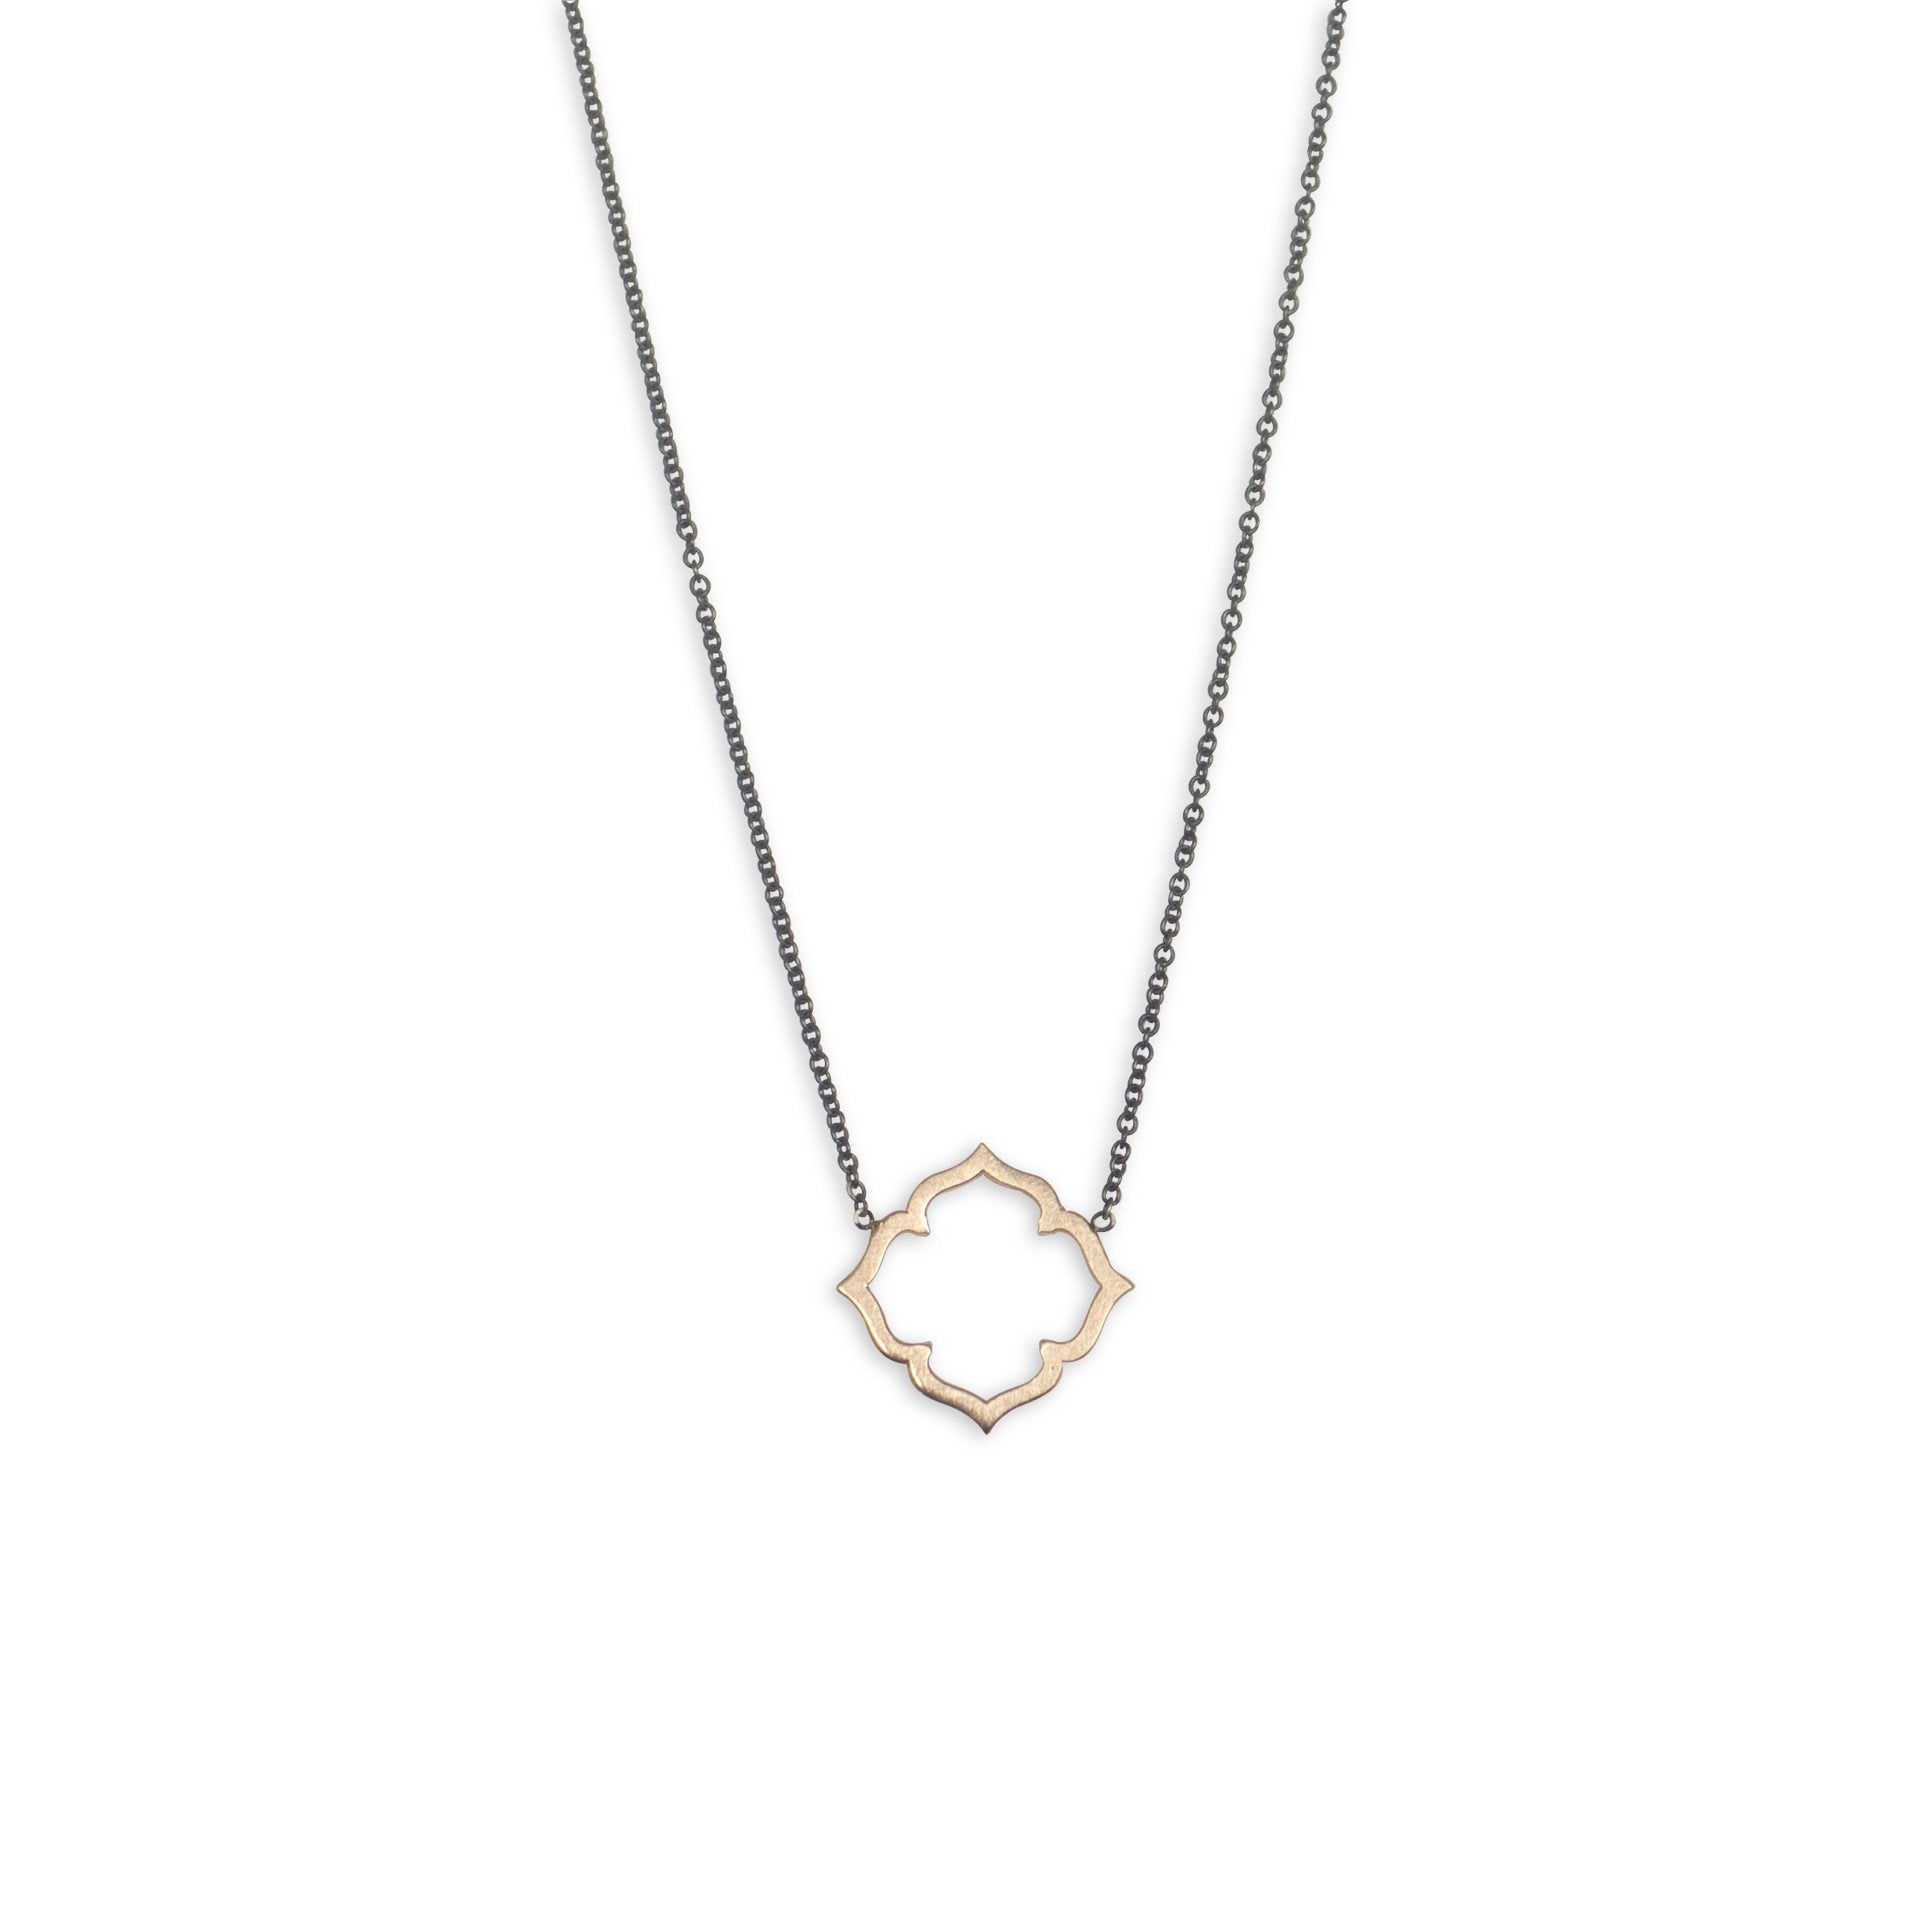 14k yellow gold on an oxidized chain clover necklace